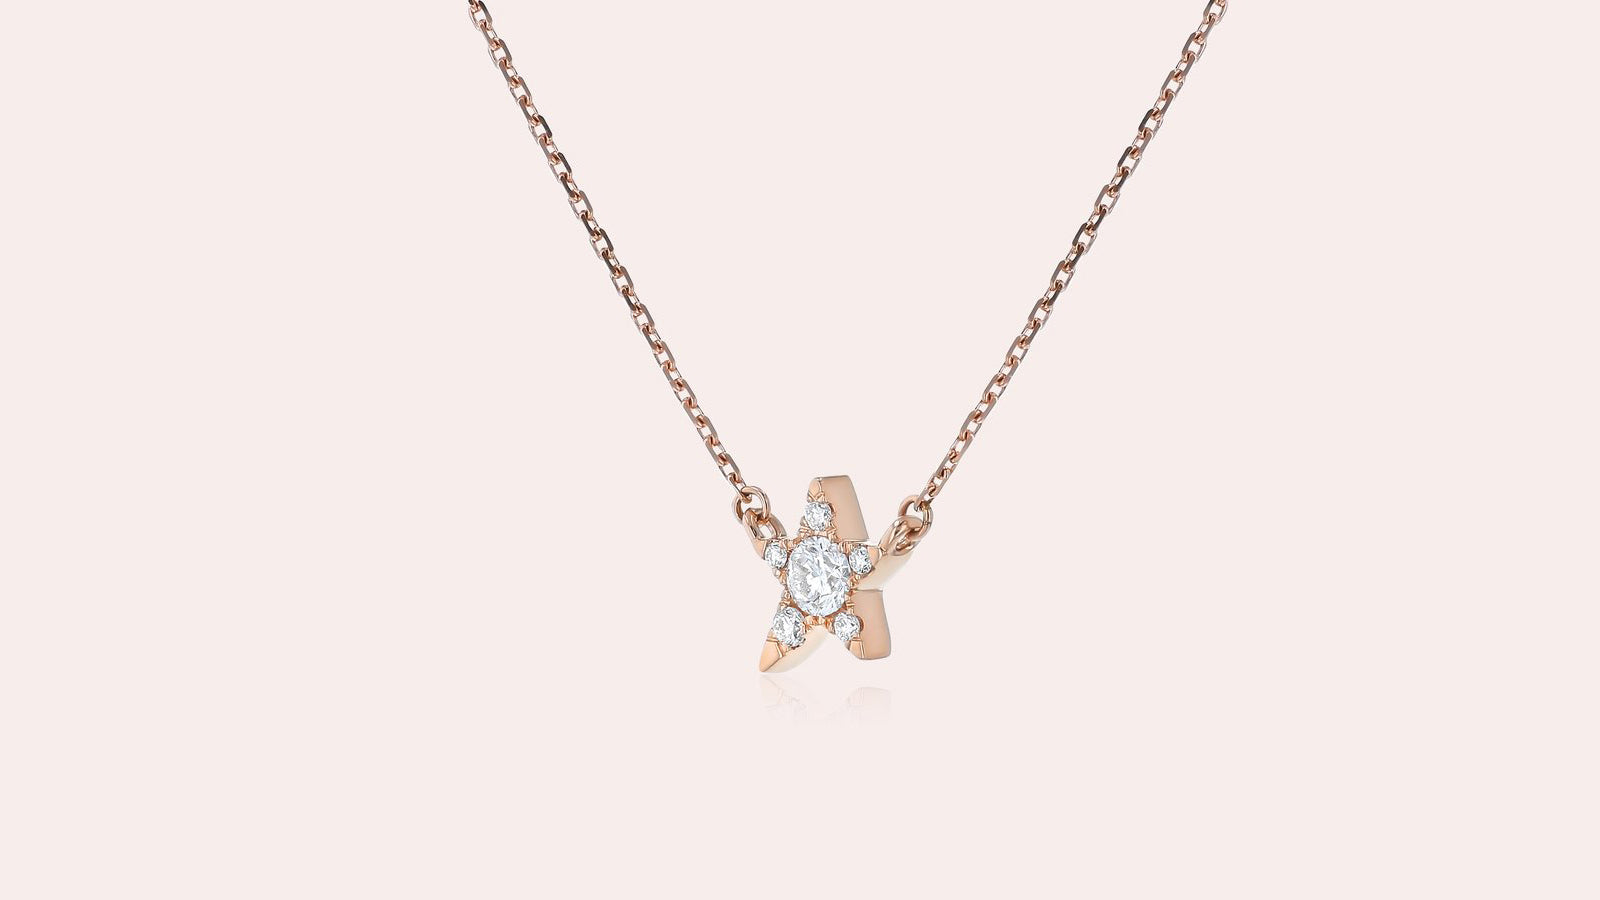 The Single Star Diamond Necklace